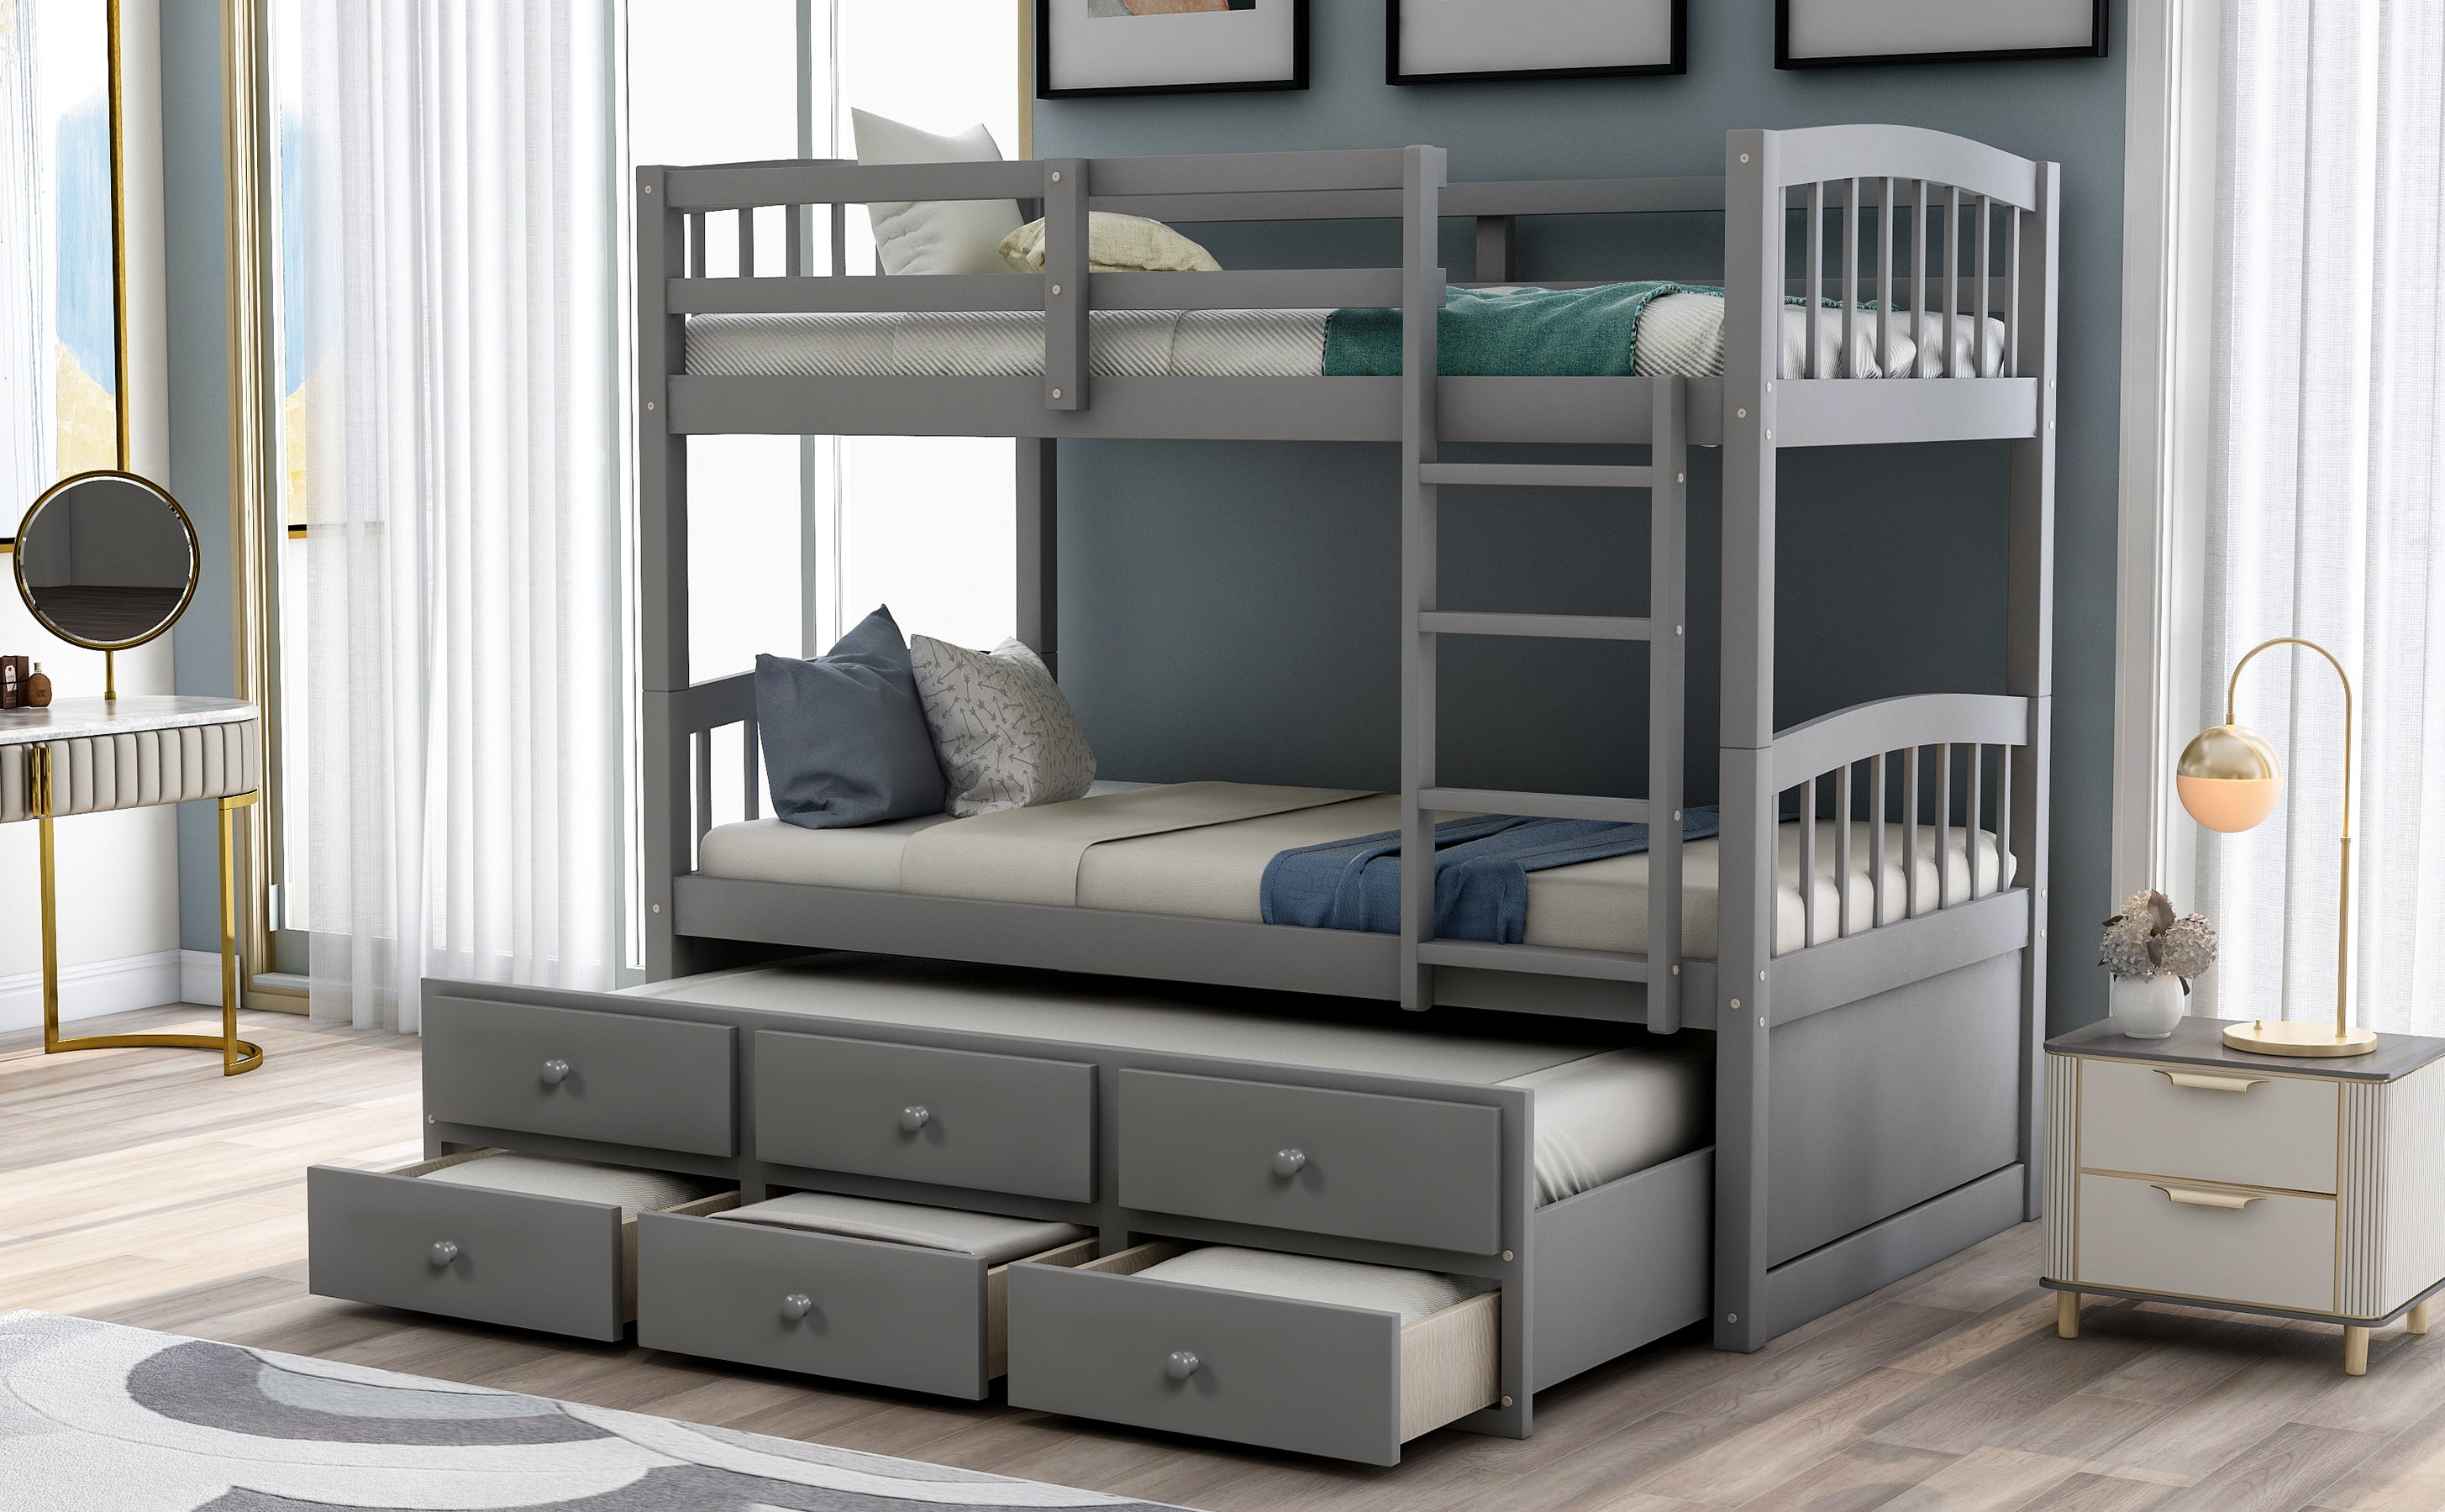 Picture of: Twin Trundle Bunk Bed With 3 Storage Drawers Modern Twin Bunk Bed With Ladder And Safety Rail Twin Over Twin Bunk Bed Frame For Kids Teens Bedroom Bunk Bed Frame Twin Over